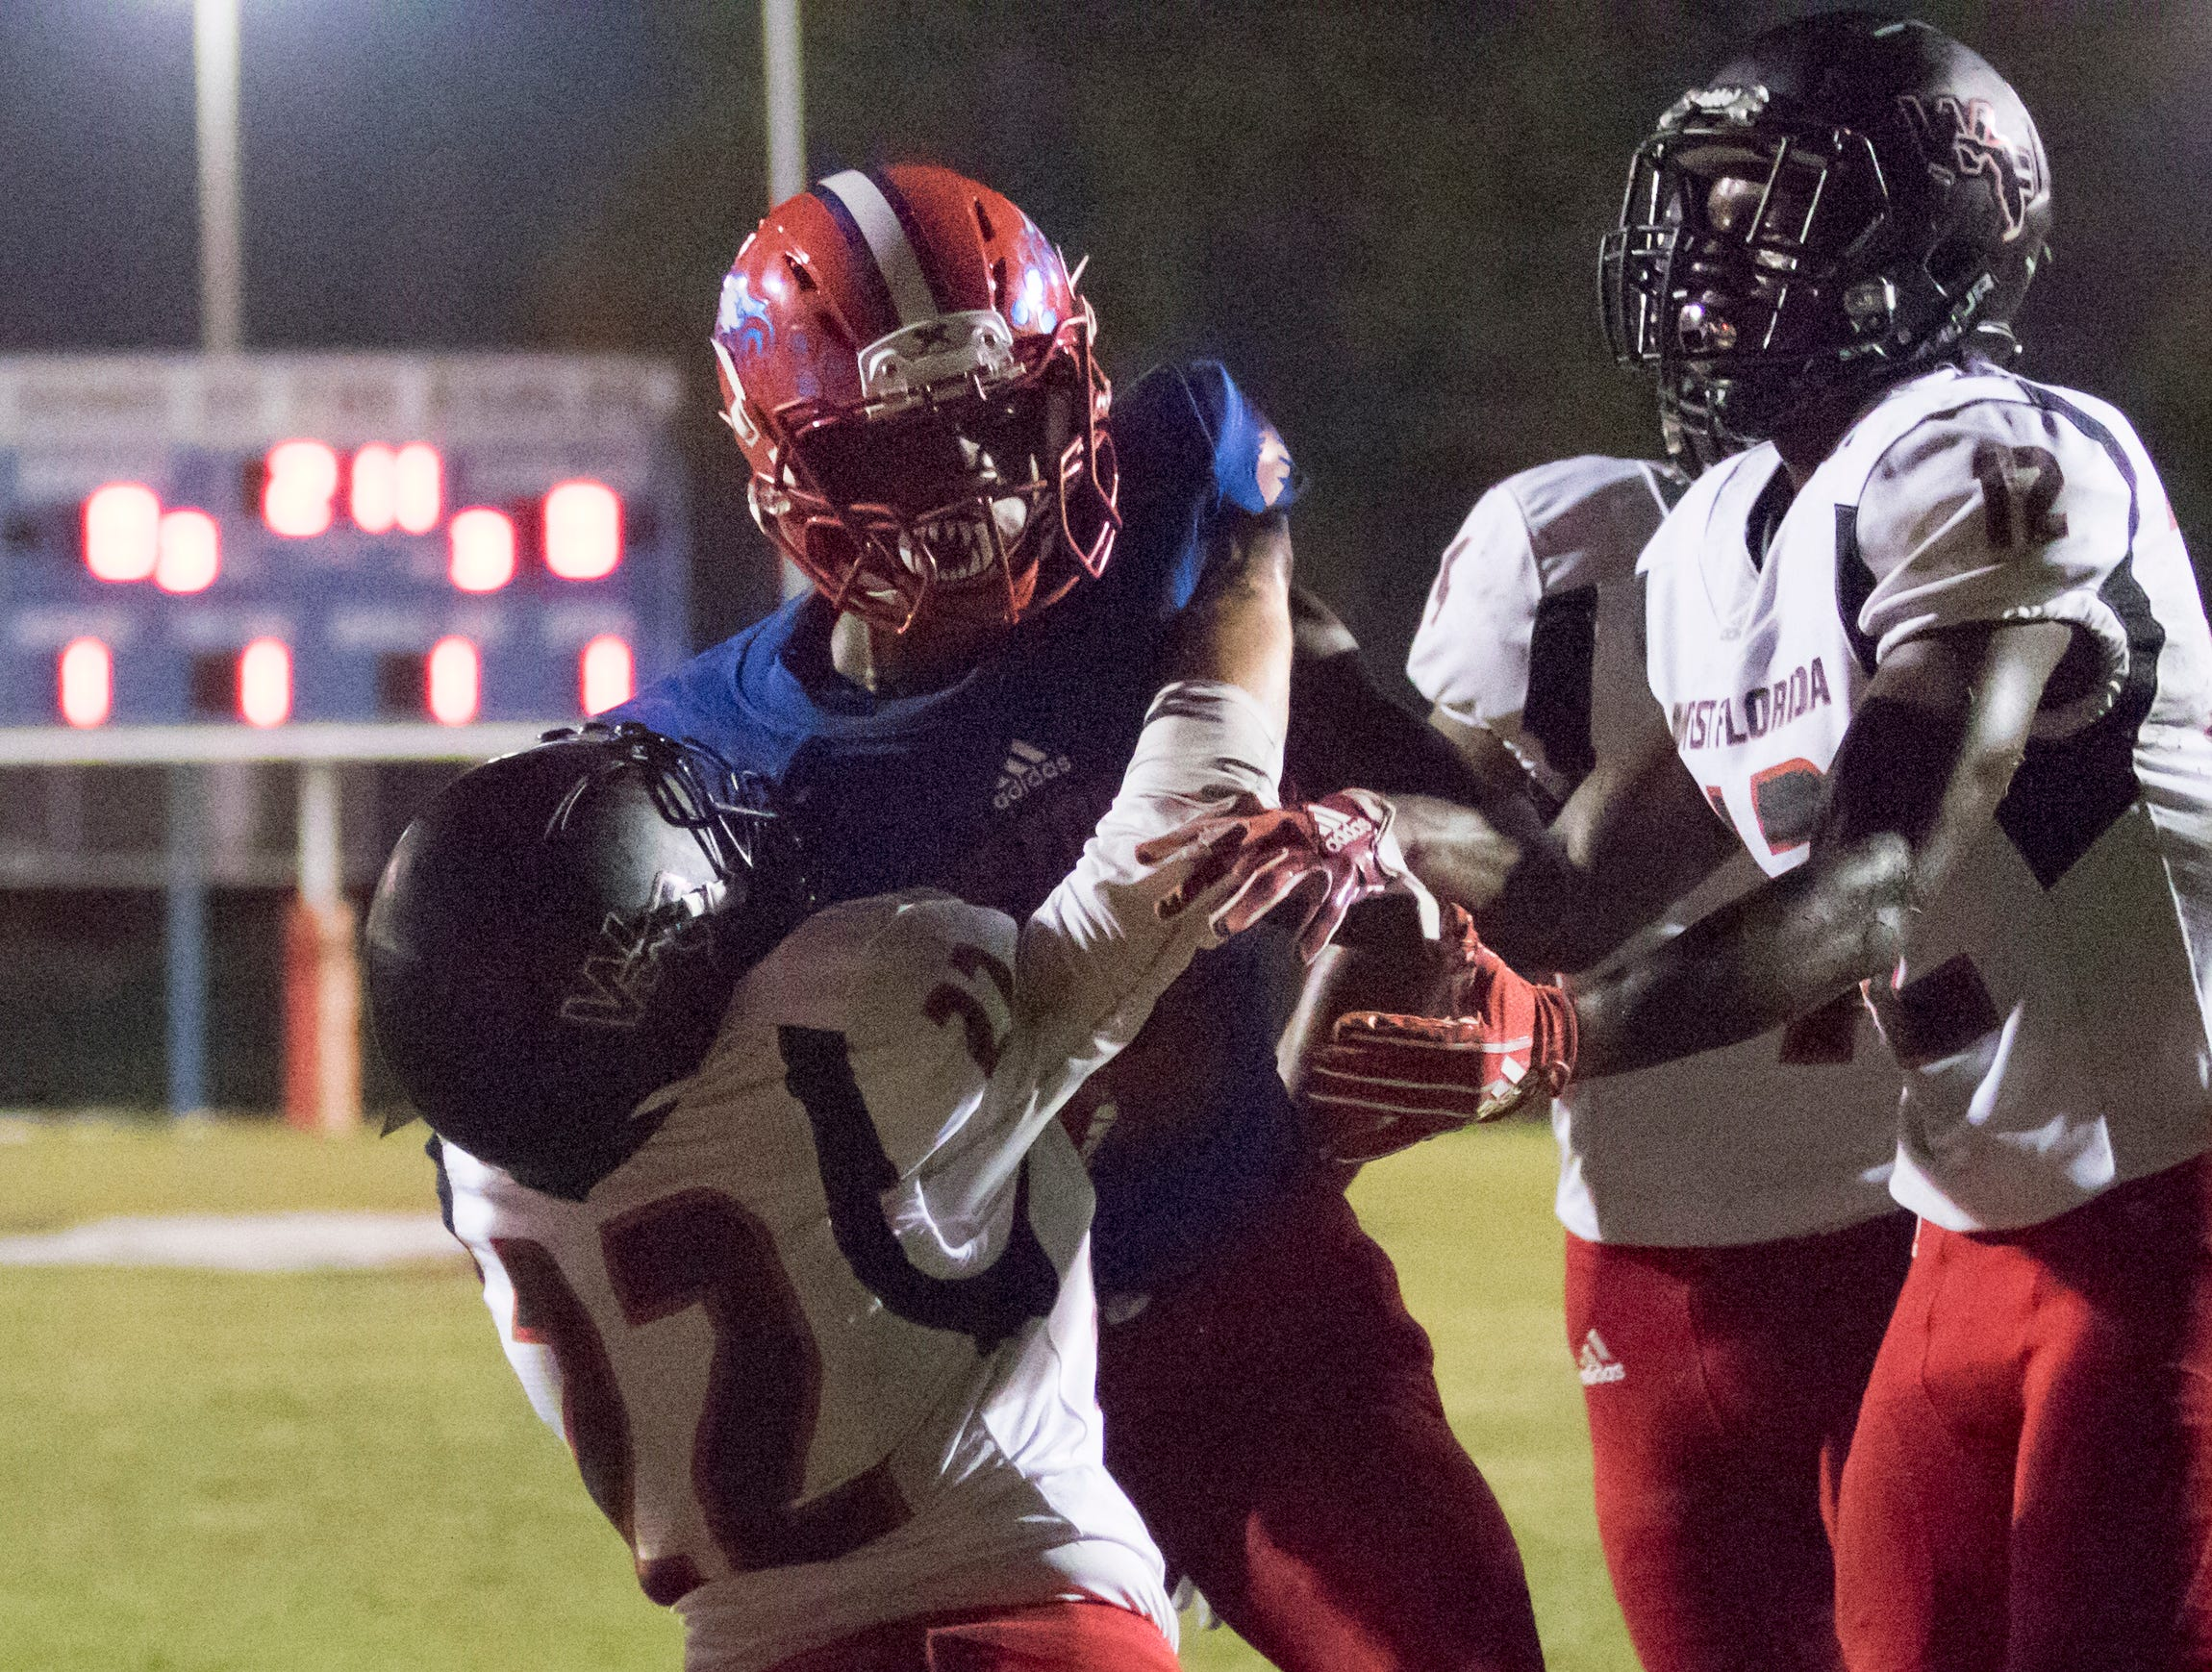 Anwar Lewis (25) takes it in for a touchdown and a 7-0 lead during the West Florida vs Pine Forest football game at Pine Forest High School in Pensacola on Friday, October 5, 2018.